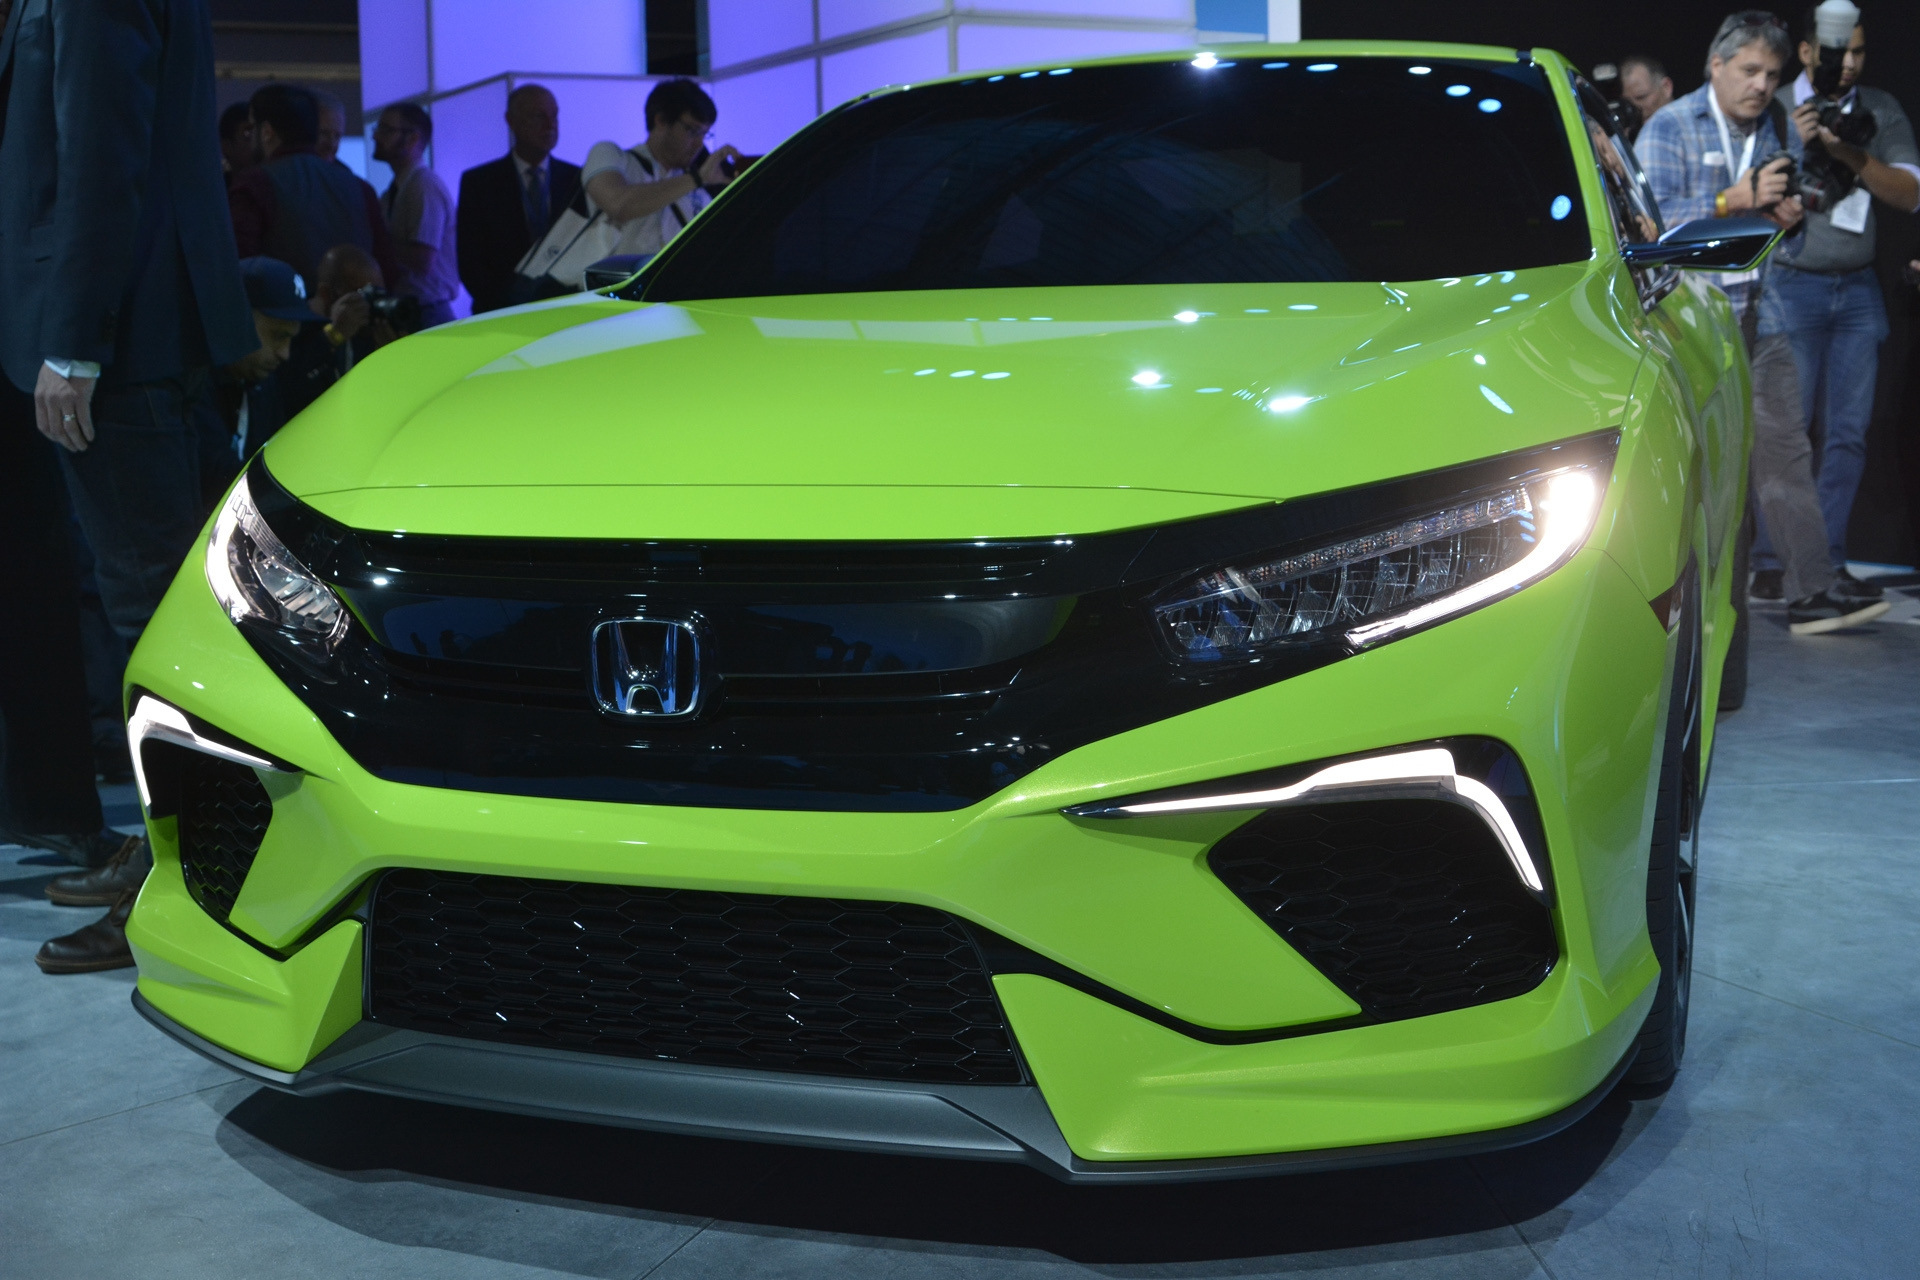 [Image: S0-Salon-de-New-York-Honda-Civic-Concept...349996.jpg]